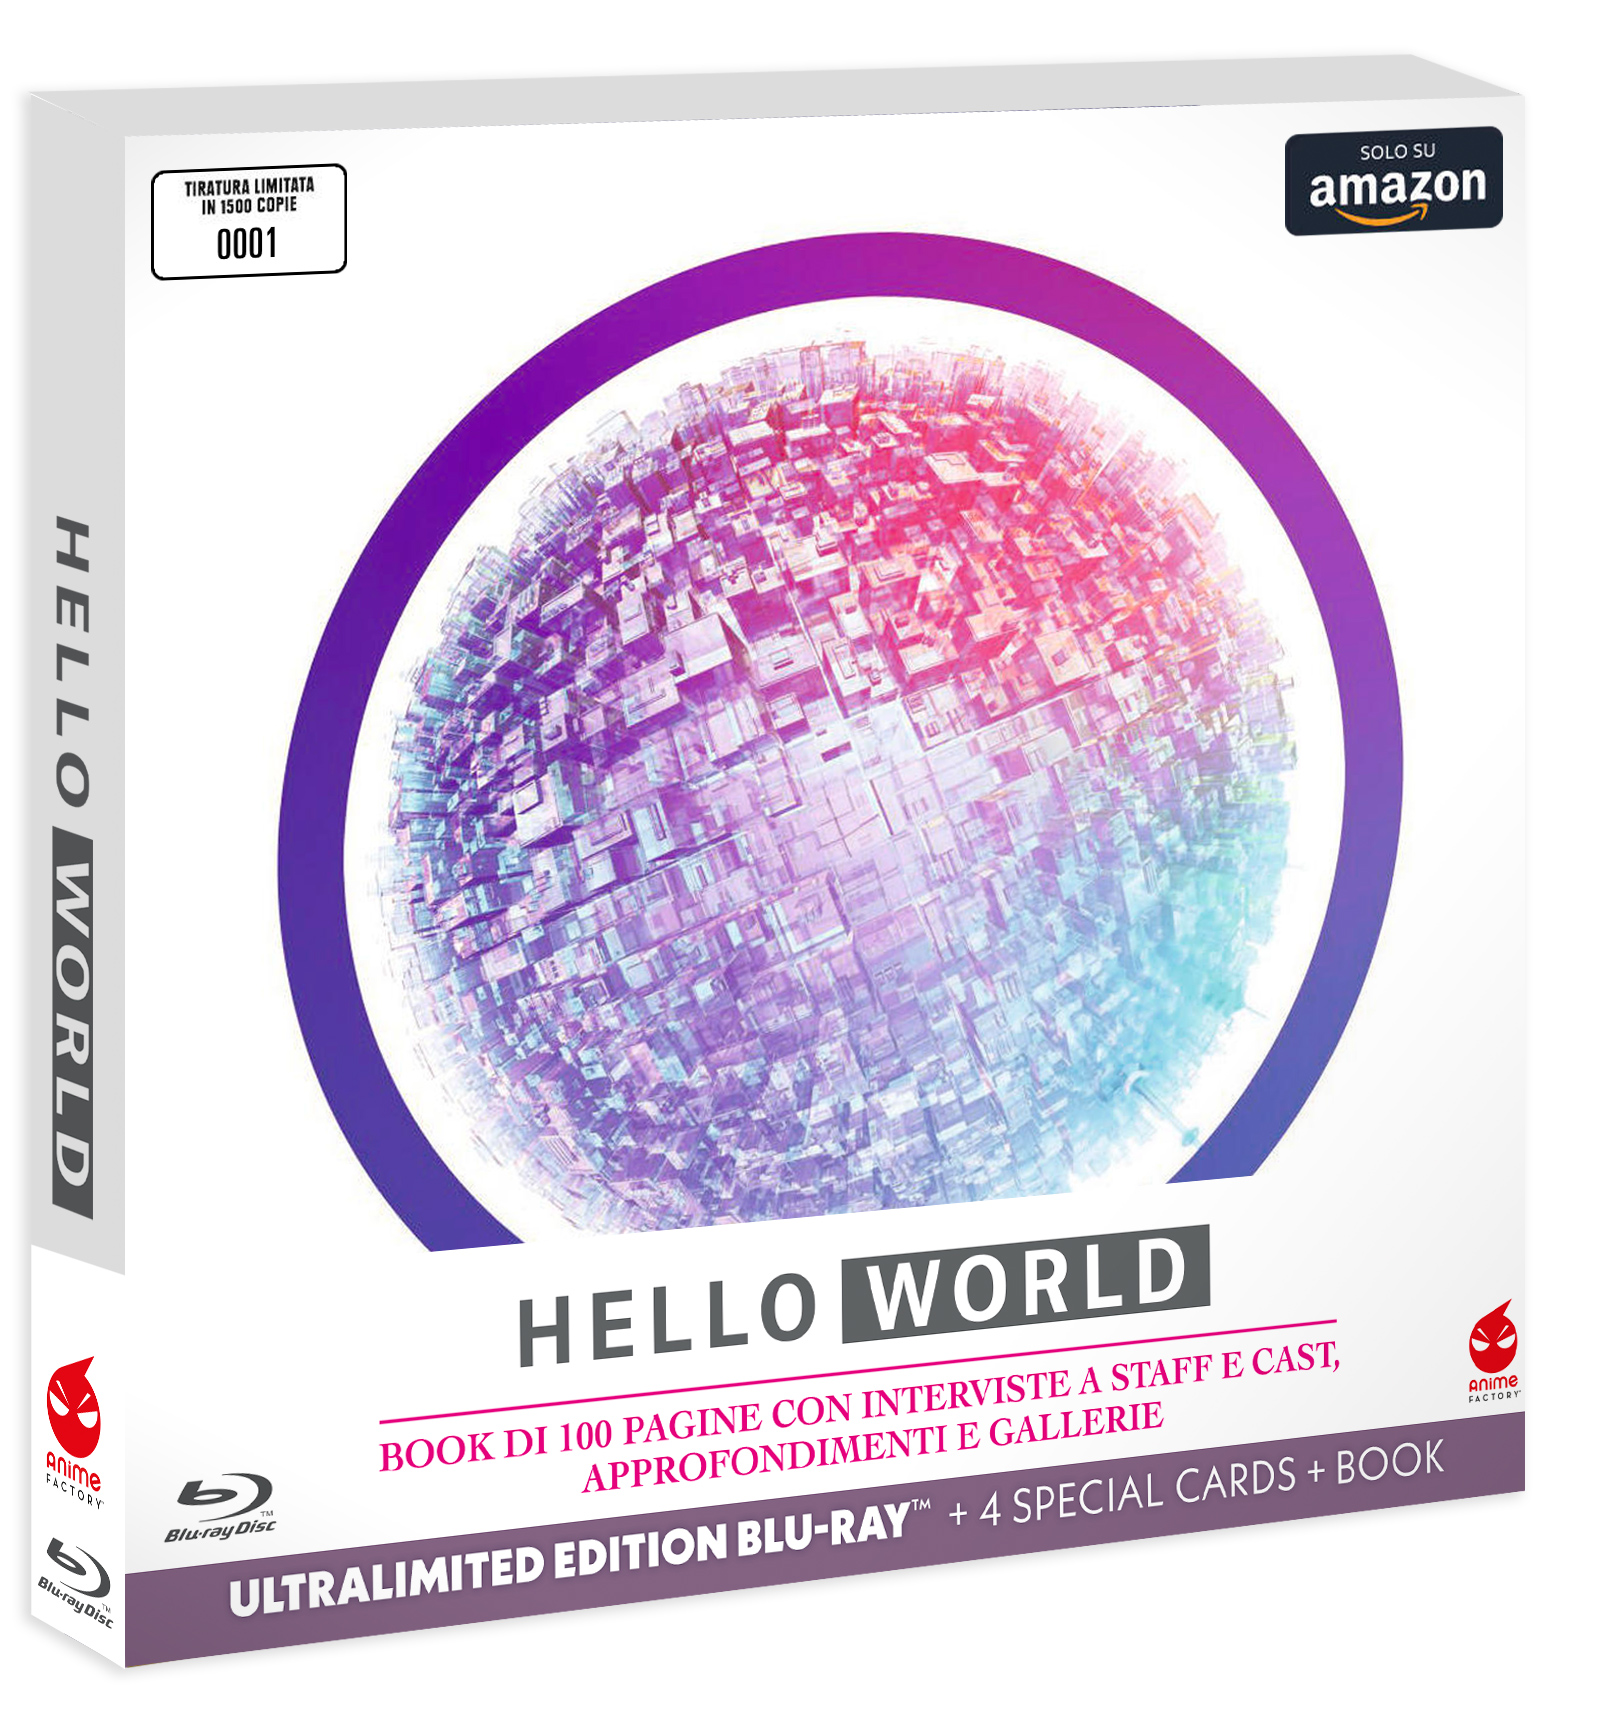 Hello World (Ultralimited Edition) – Esclusiva Amazon.it